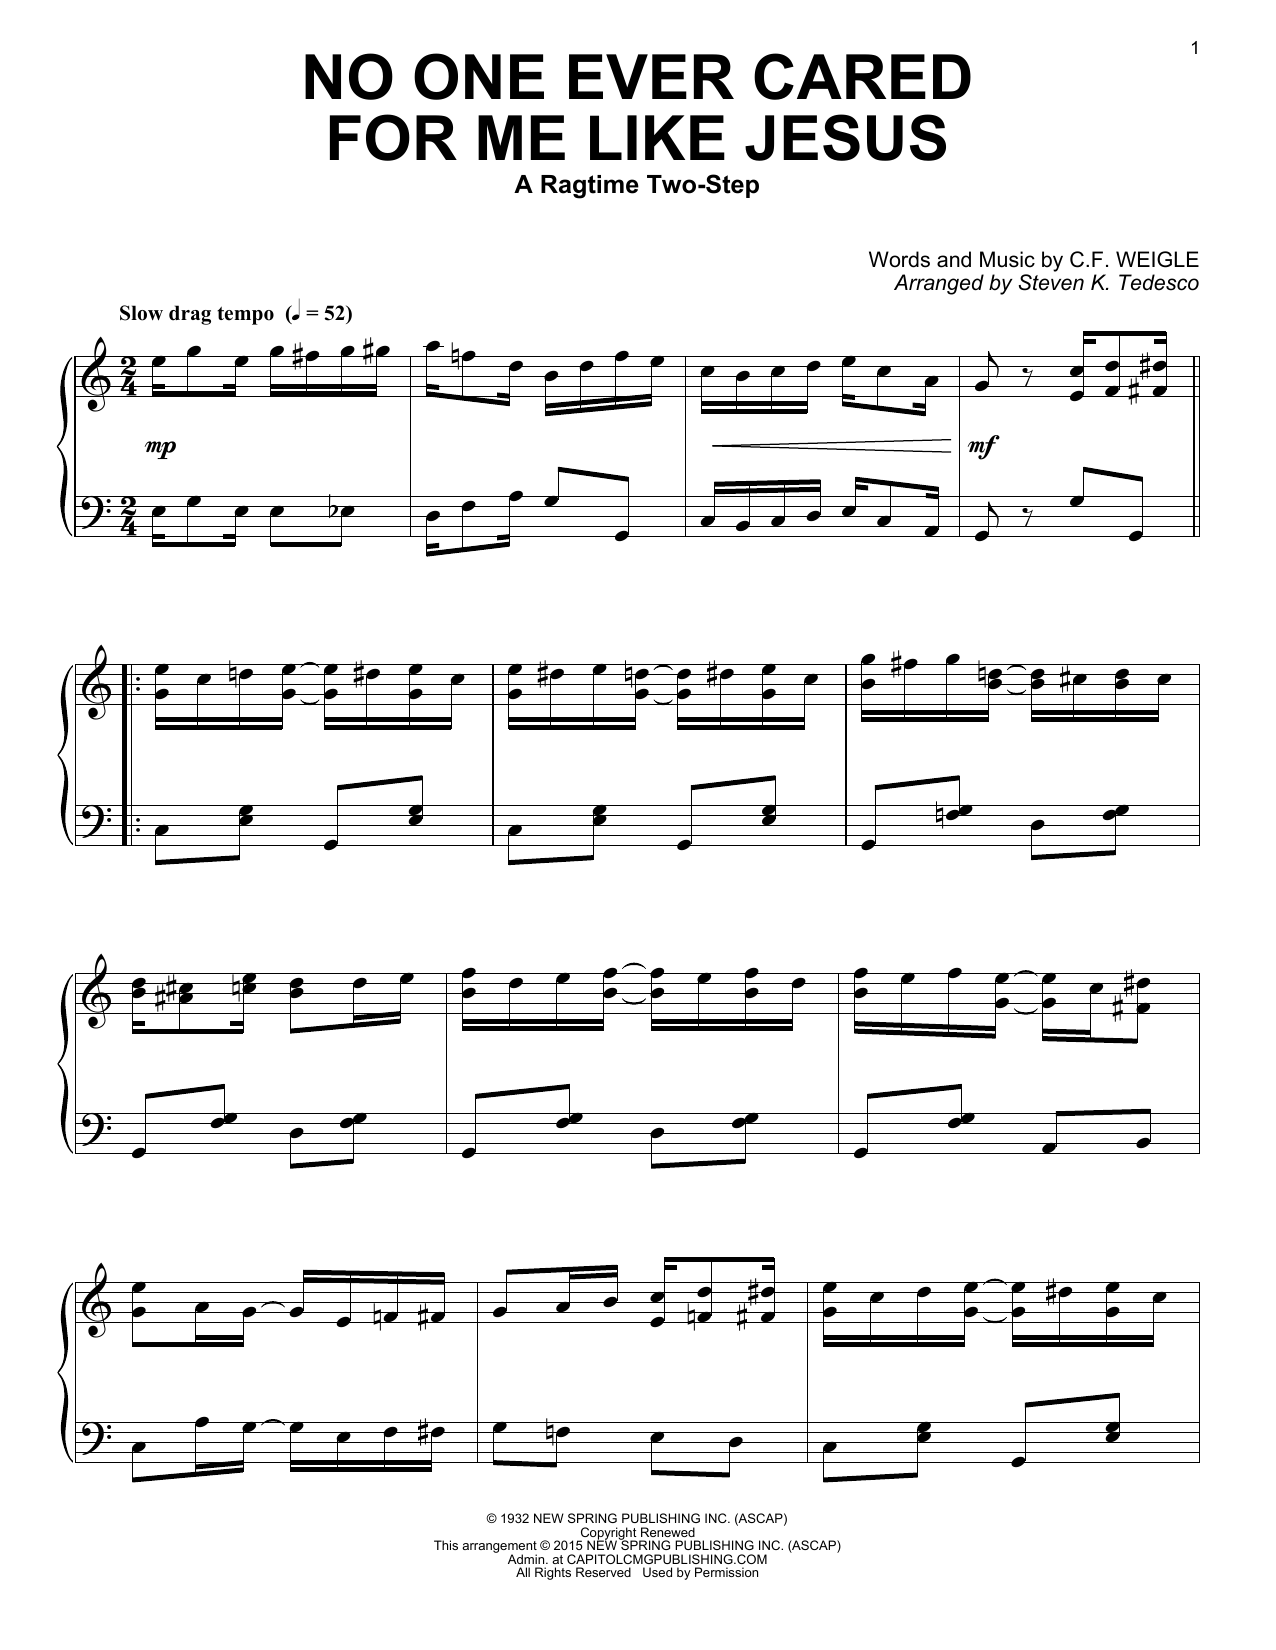 Download Steven K. Tedesco 'No One Ever Cared For Me Like Jesus' Digital Sheet Music Notes & Chords and start playing in minutes